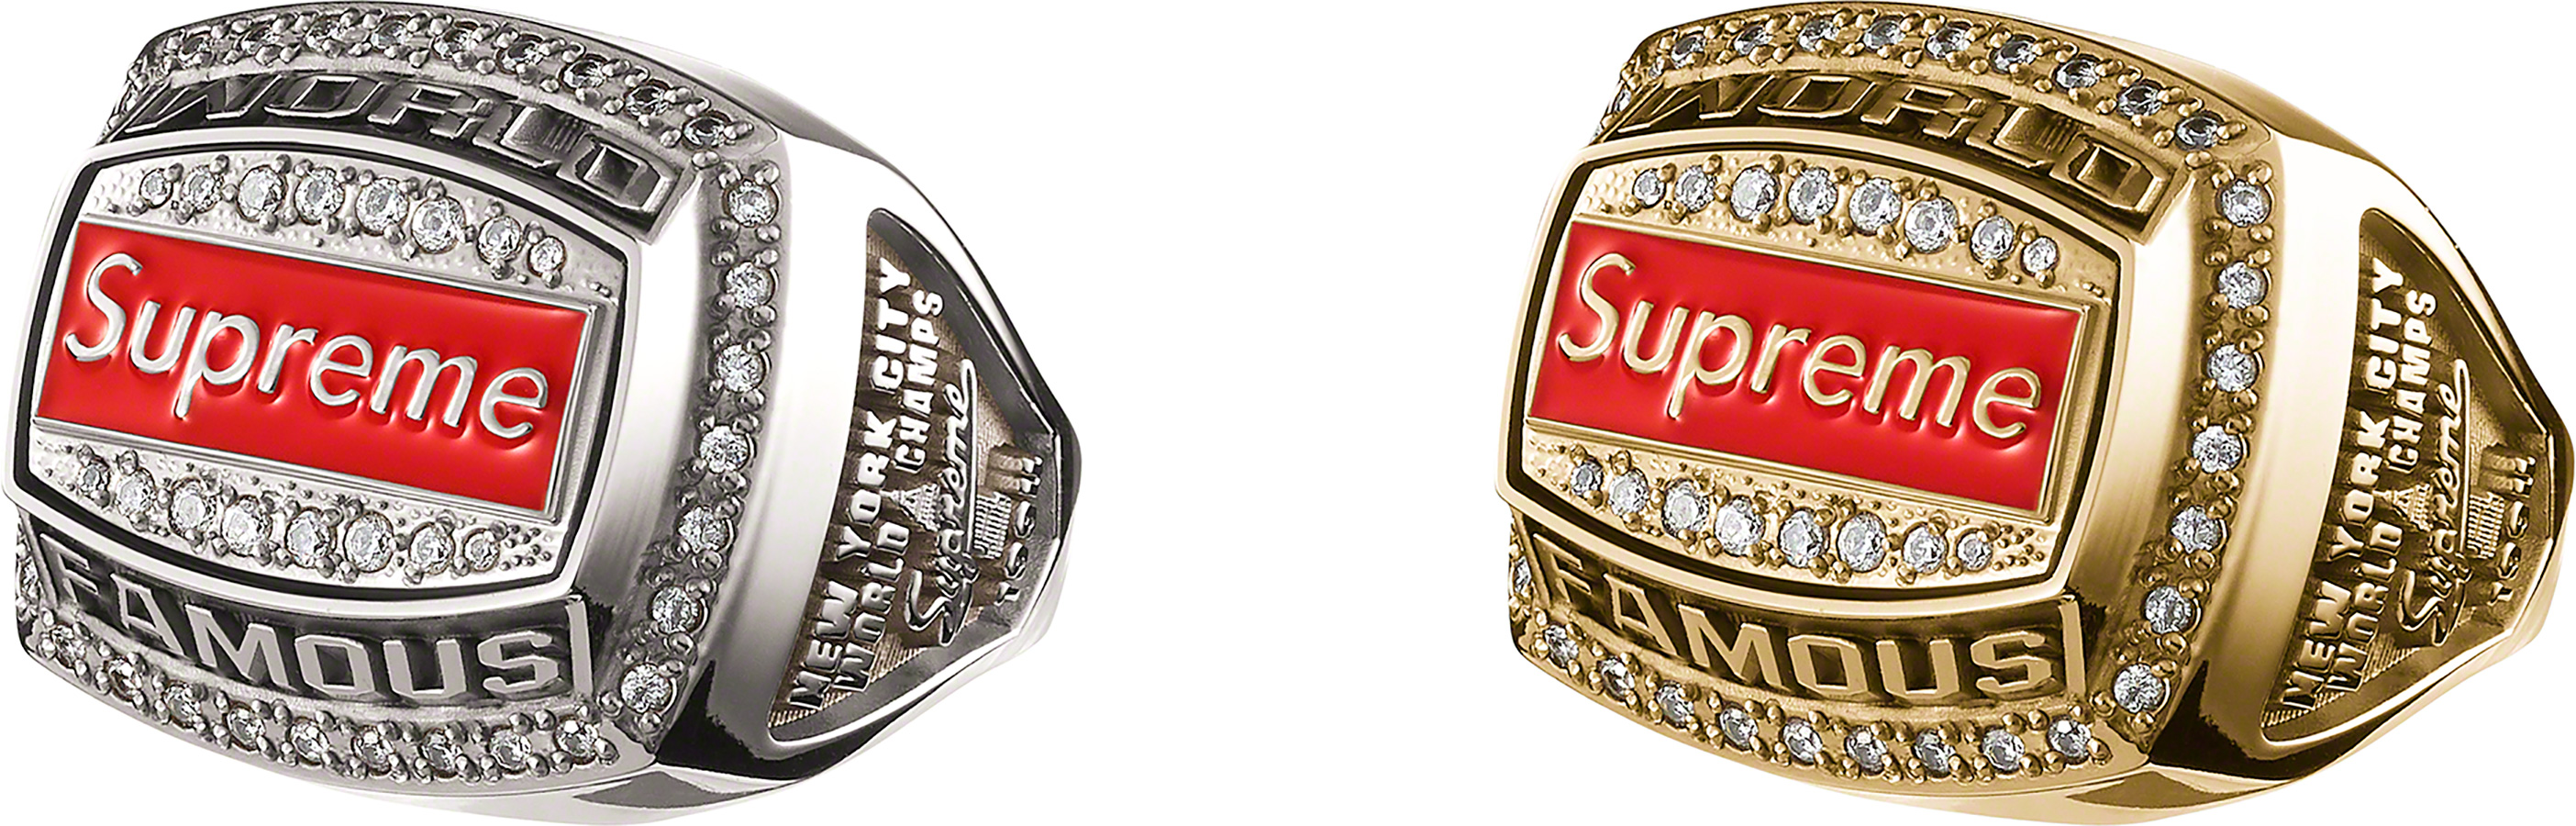 supreme-21ss-spring-summer-supreme-jostens-world-famous-champion-ring